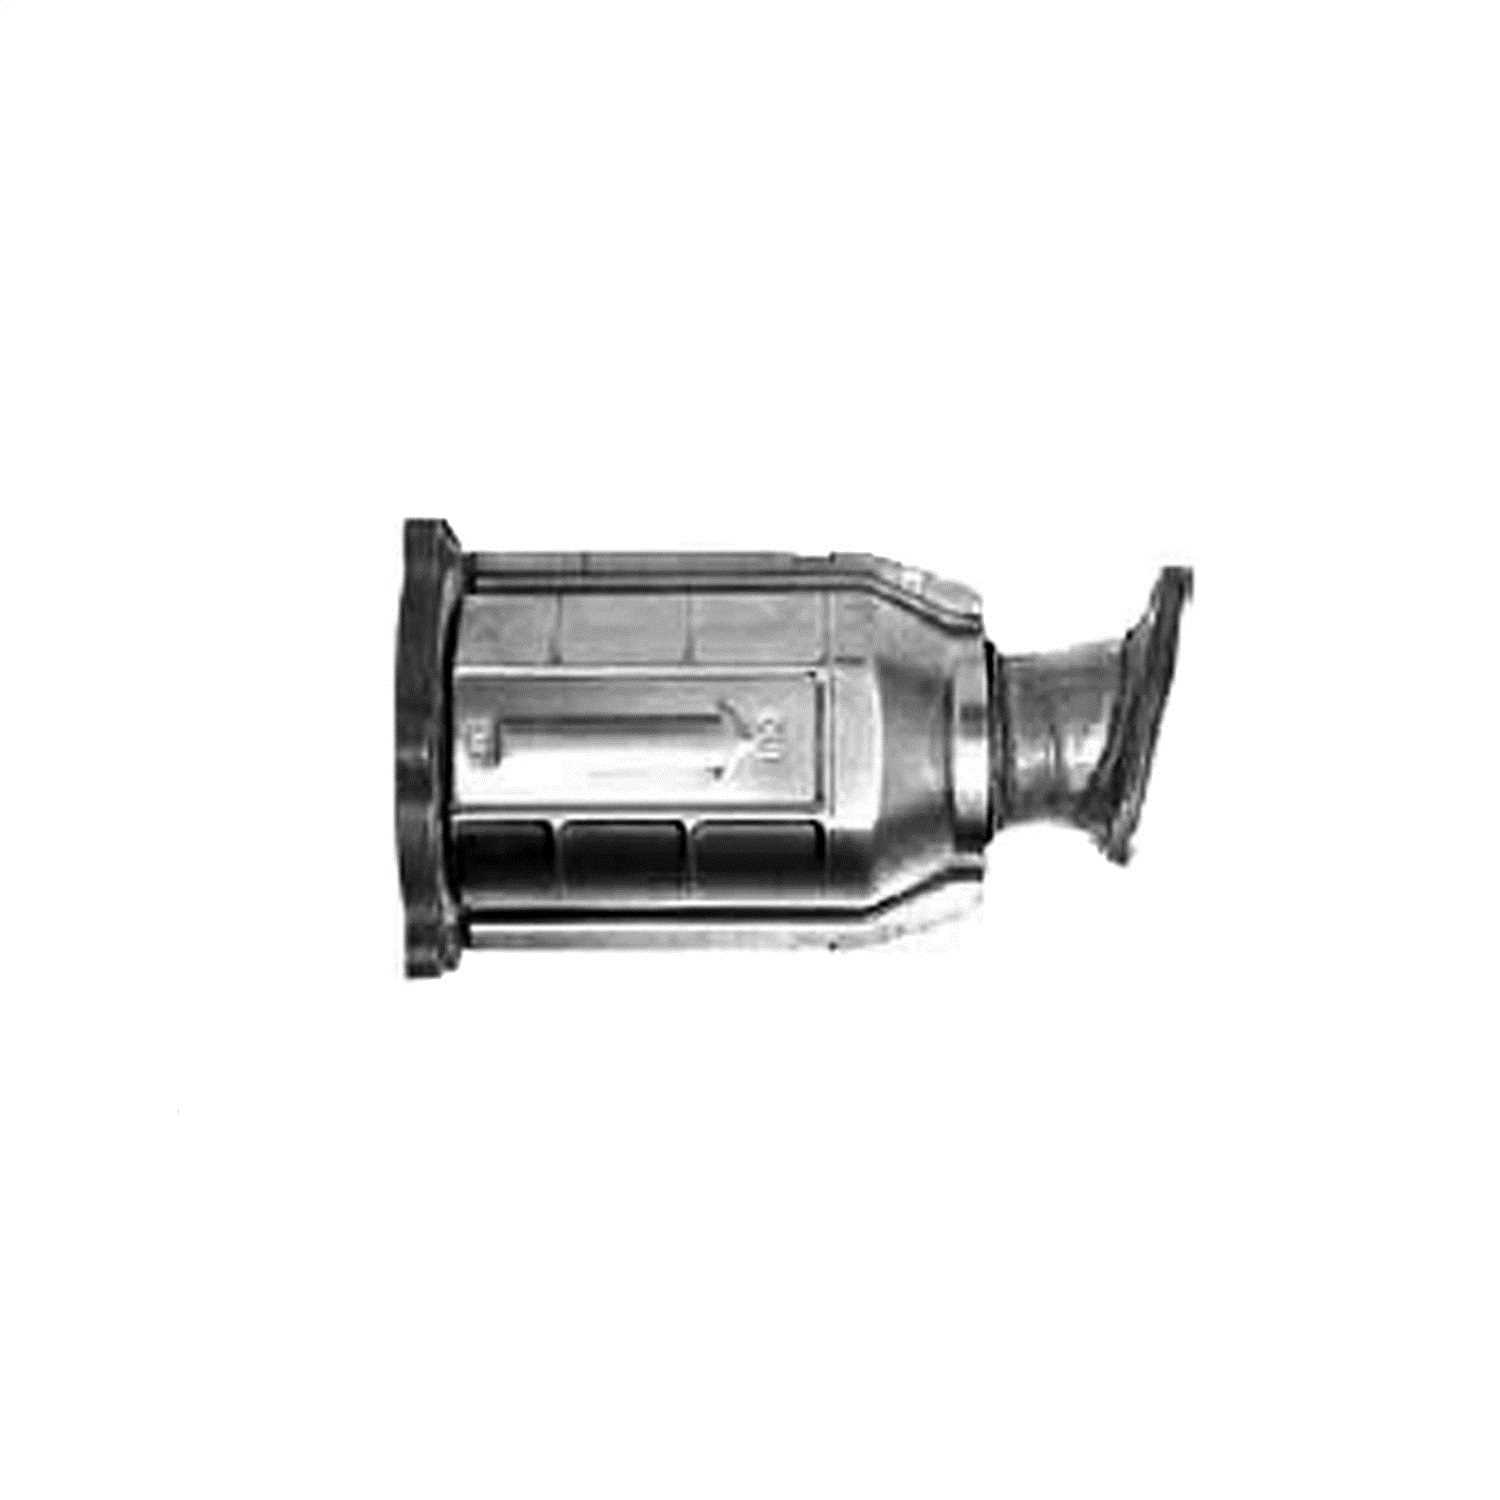 2071118 Flowmaster 49 State Catalytic Converters Direct Fit Catalytic Converter